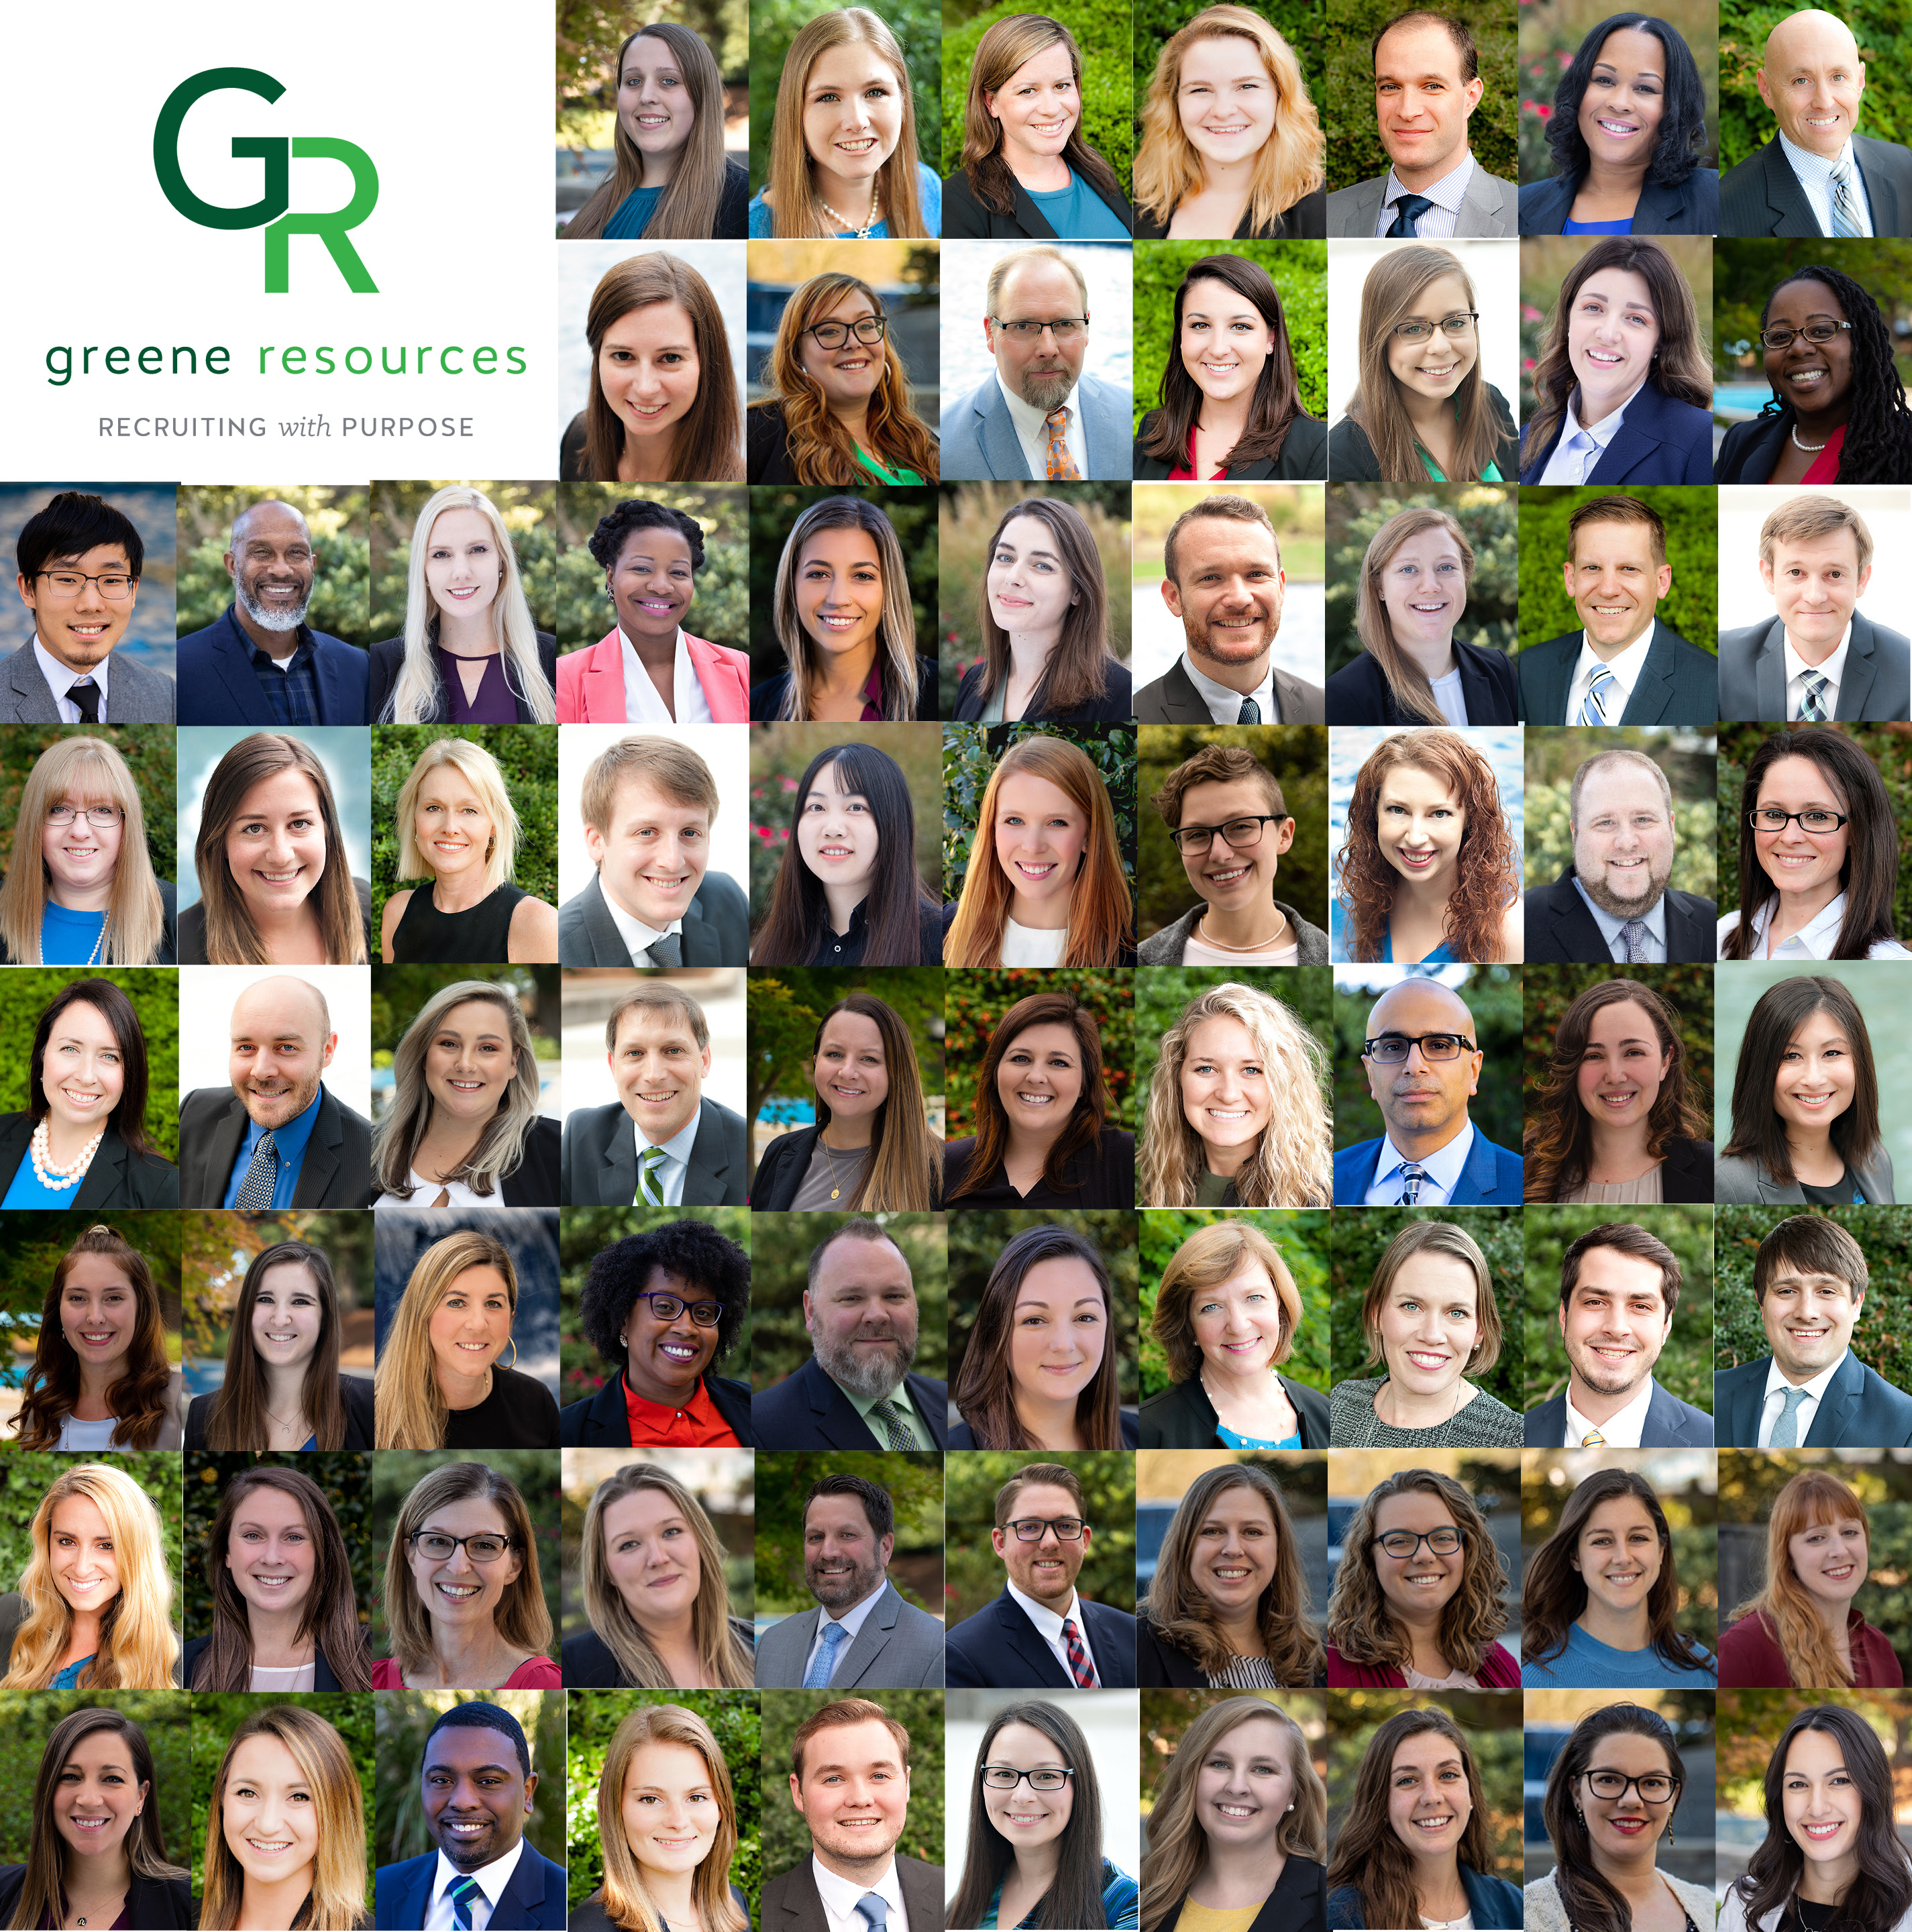 The Greene Team collage of headshots